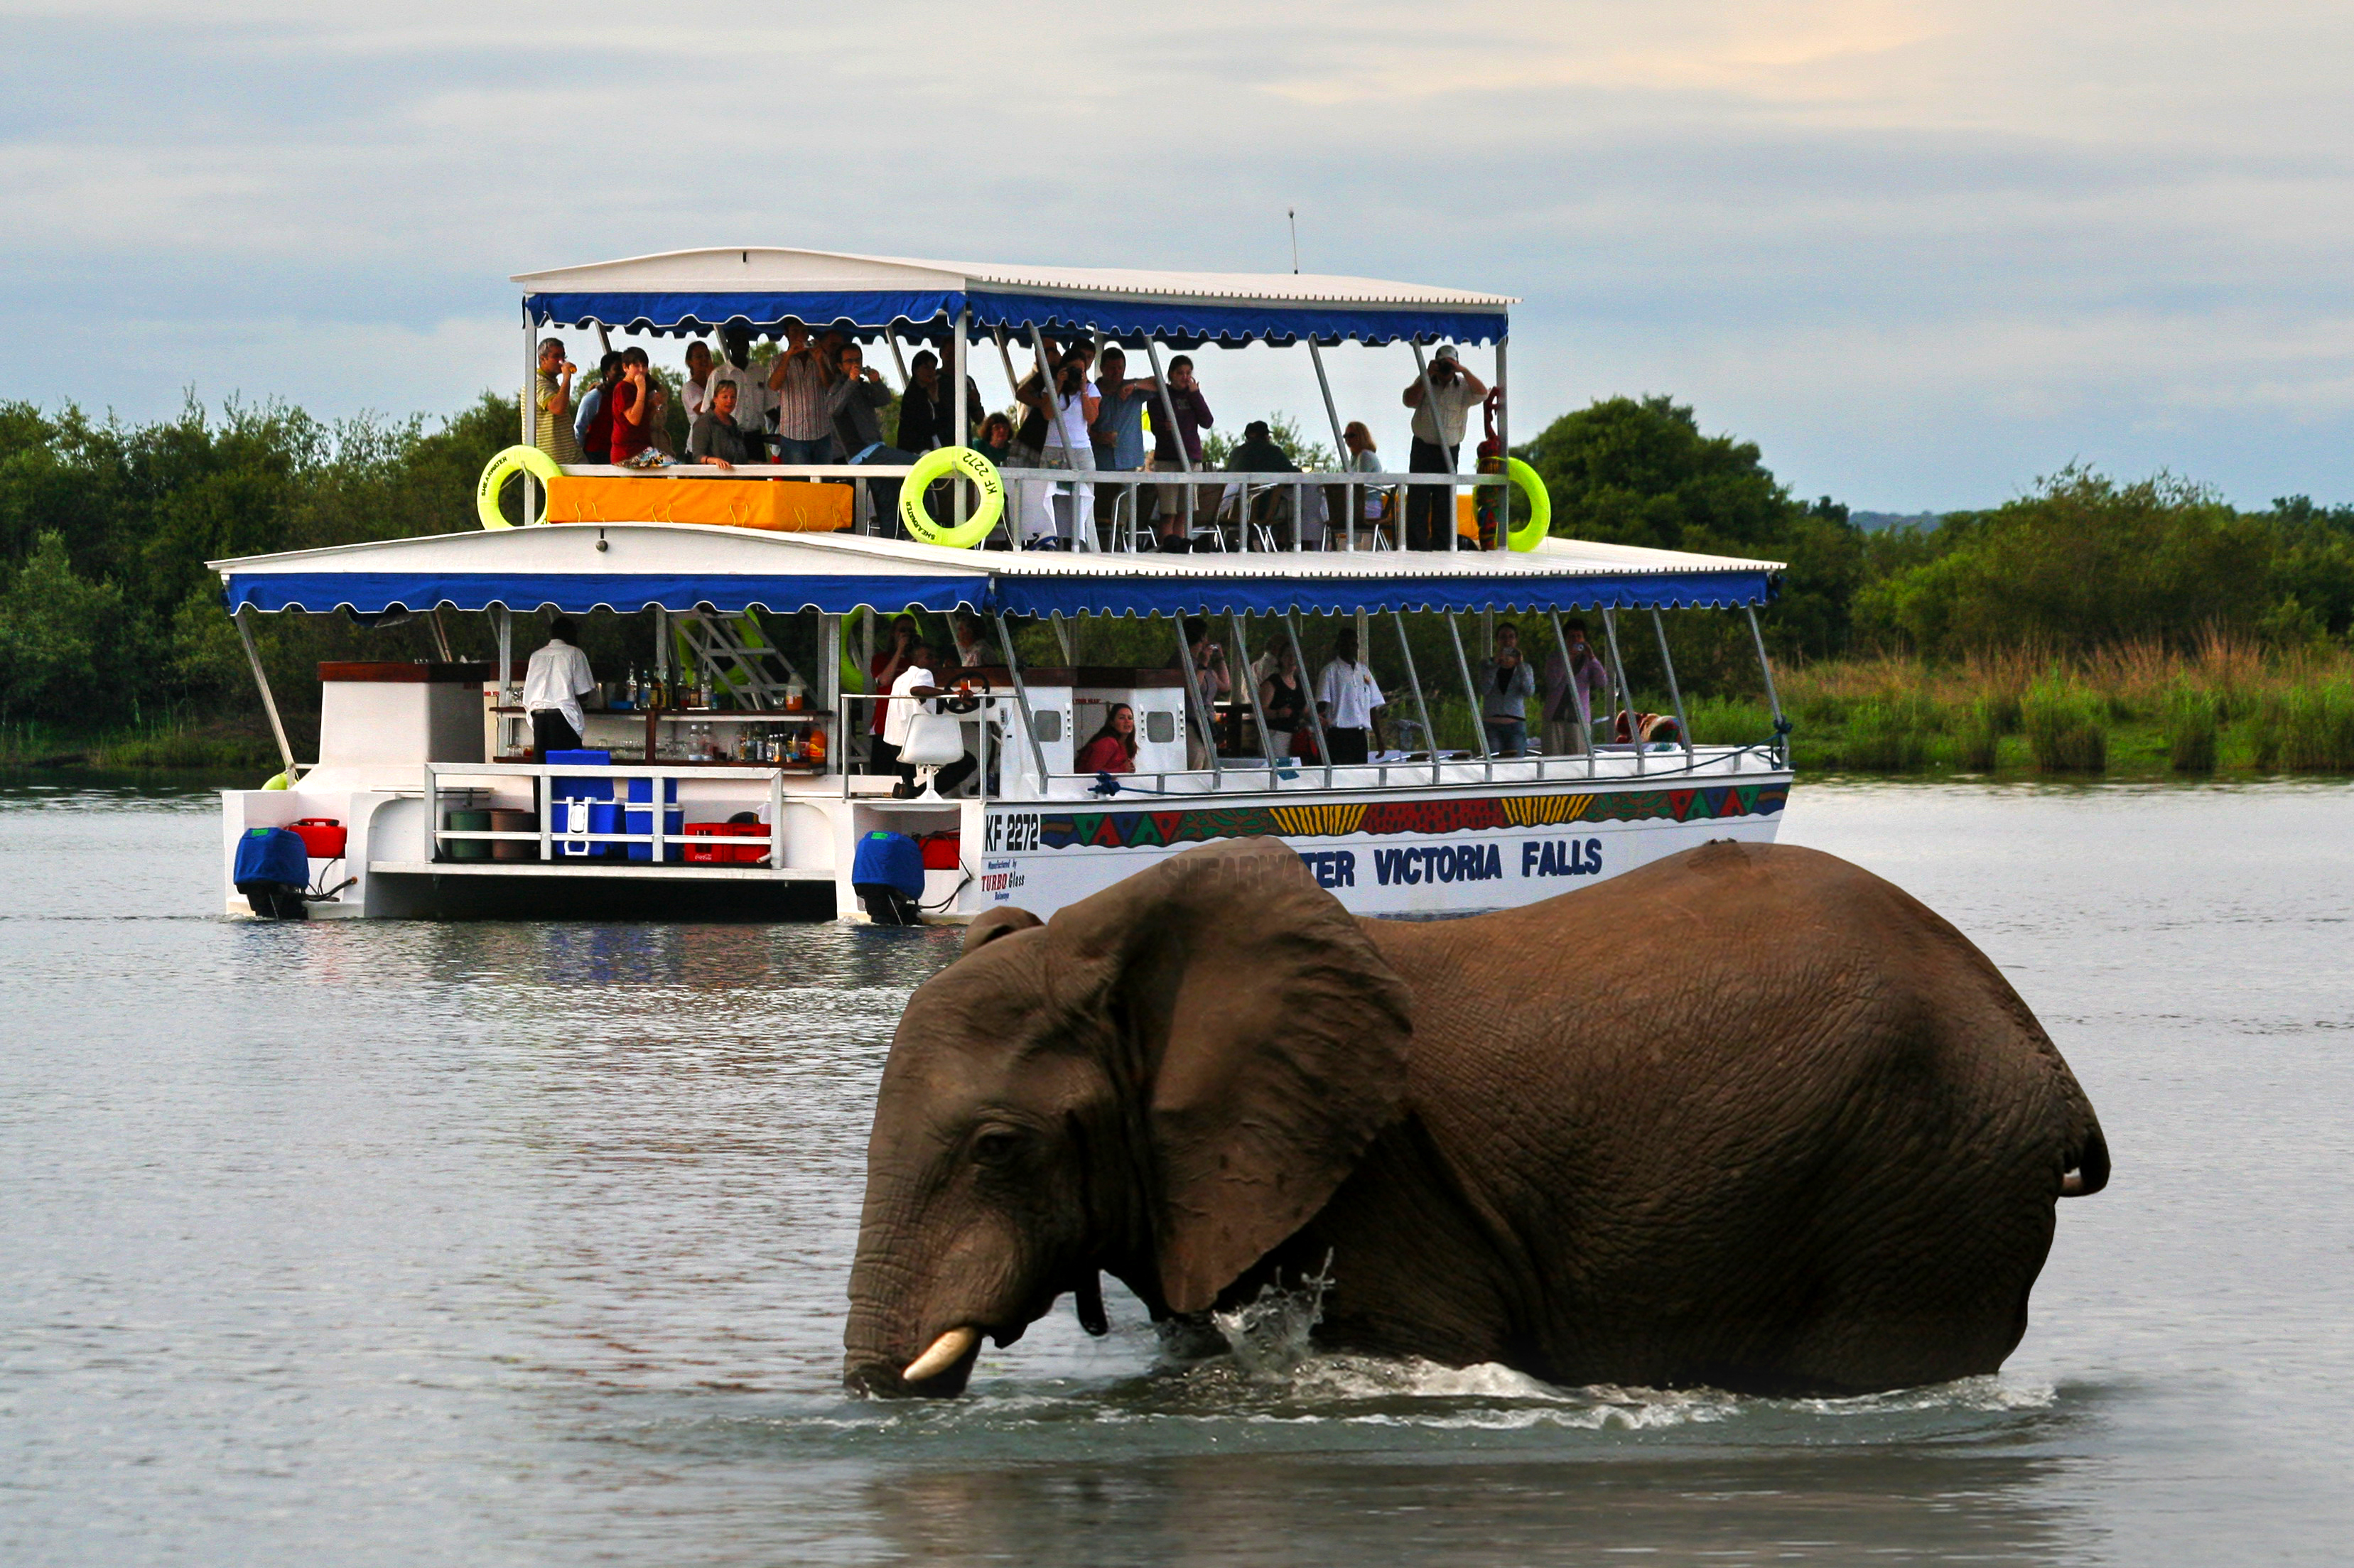 Victoria Falls Sunset Cruise Package